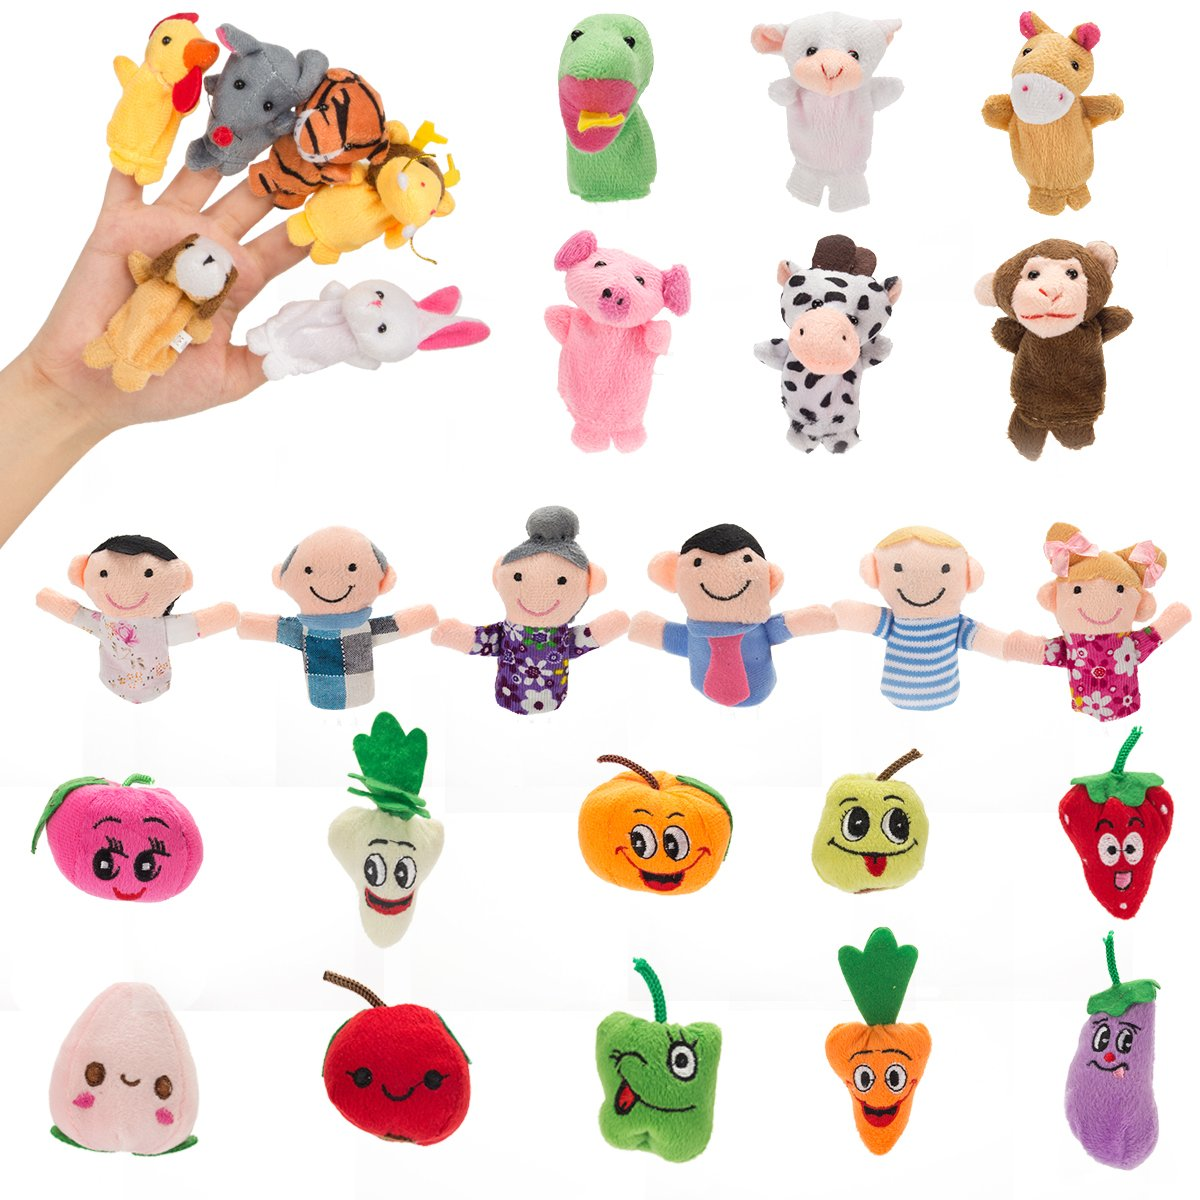 Biubee 28 PCS Finger Puppets Animal family Fruit Toys for Toddlers Kids Adults - 12 Farm Animals + 6 Family Members + 10 Fruits for Story Telling, Role Play, Great Novelty Educational Toys Set